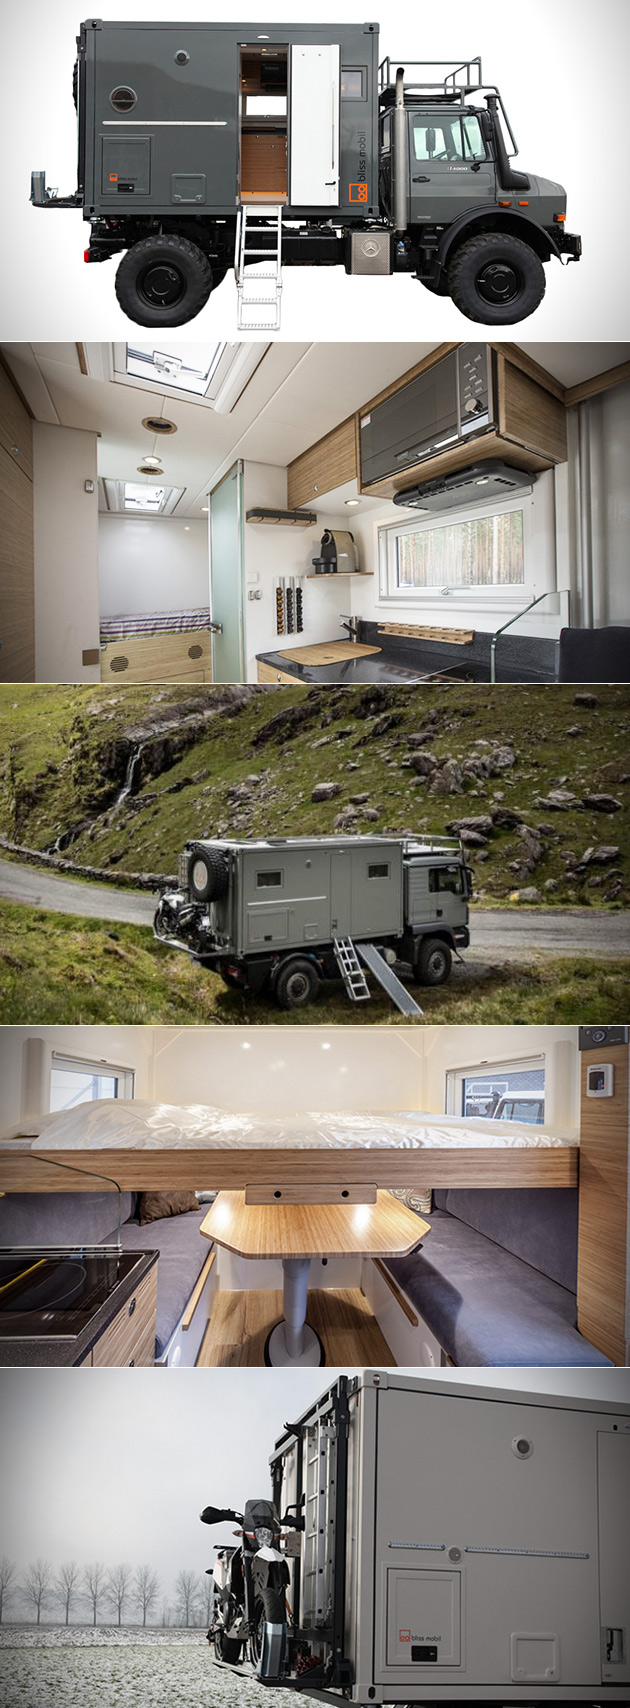 Take a Mercedes Truck, Add a Solar-Powered Container, and You Get Bliss Mobil Expedition Vehicles